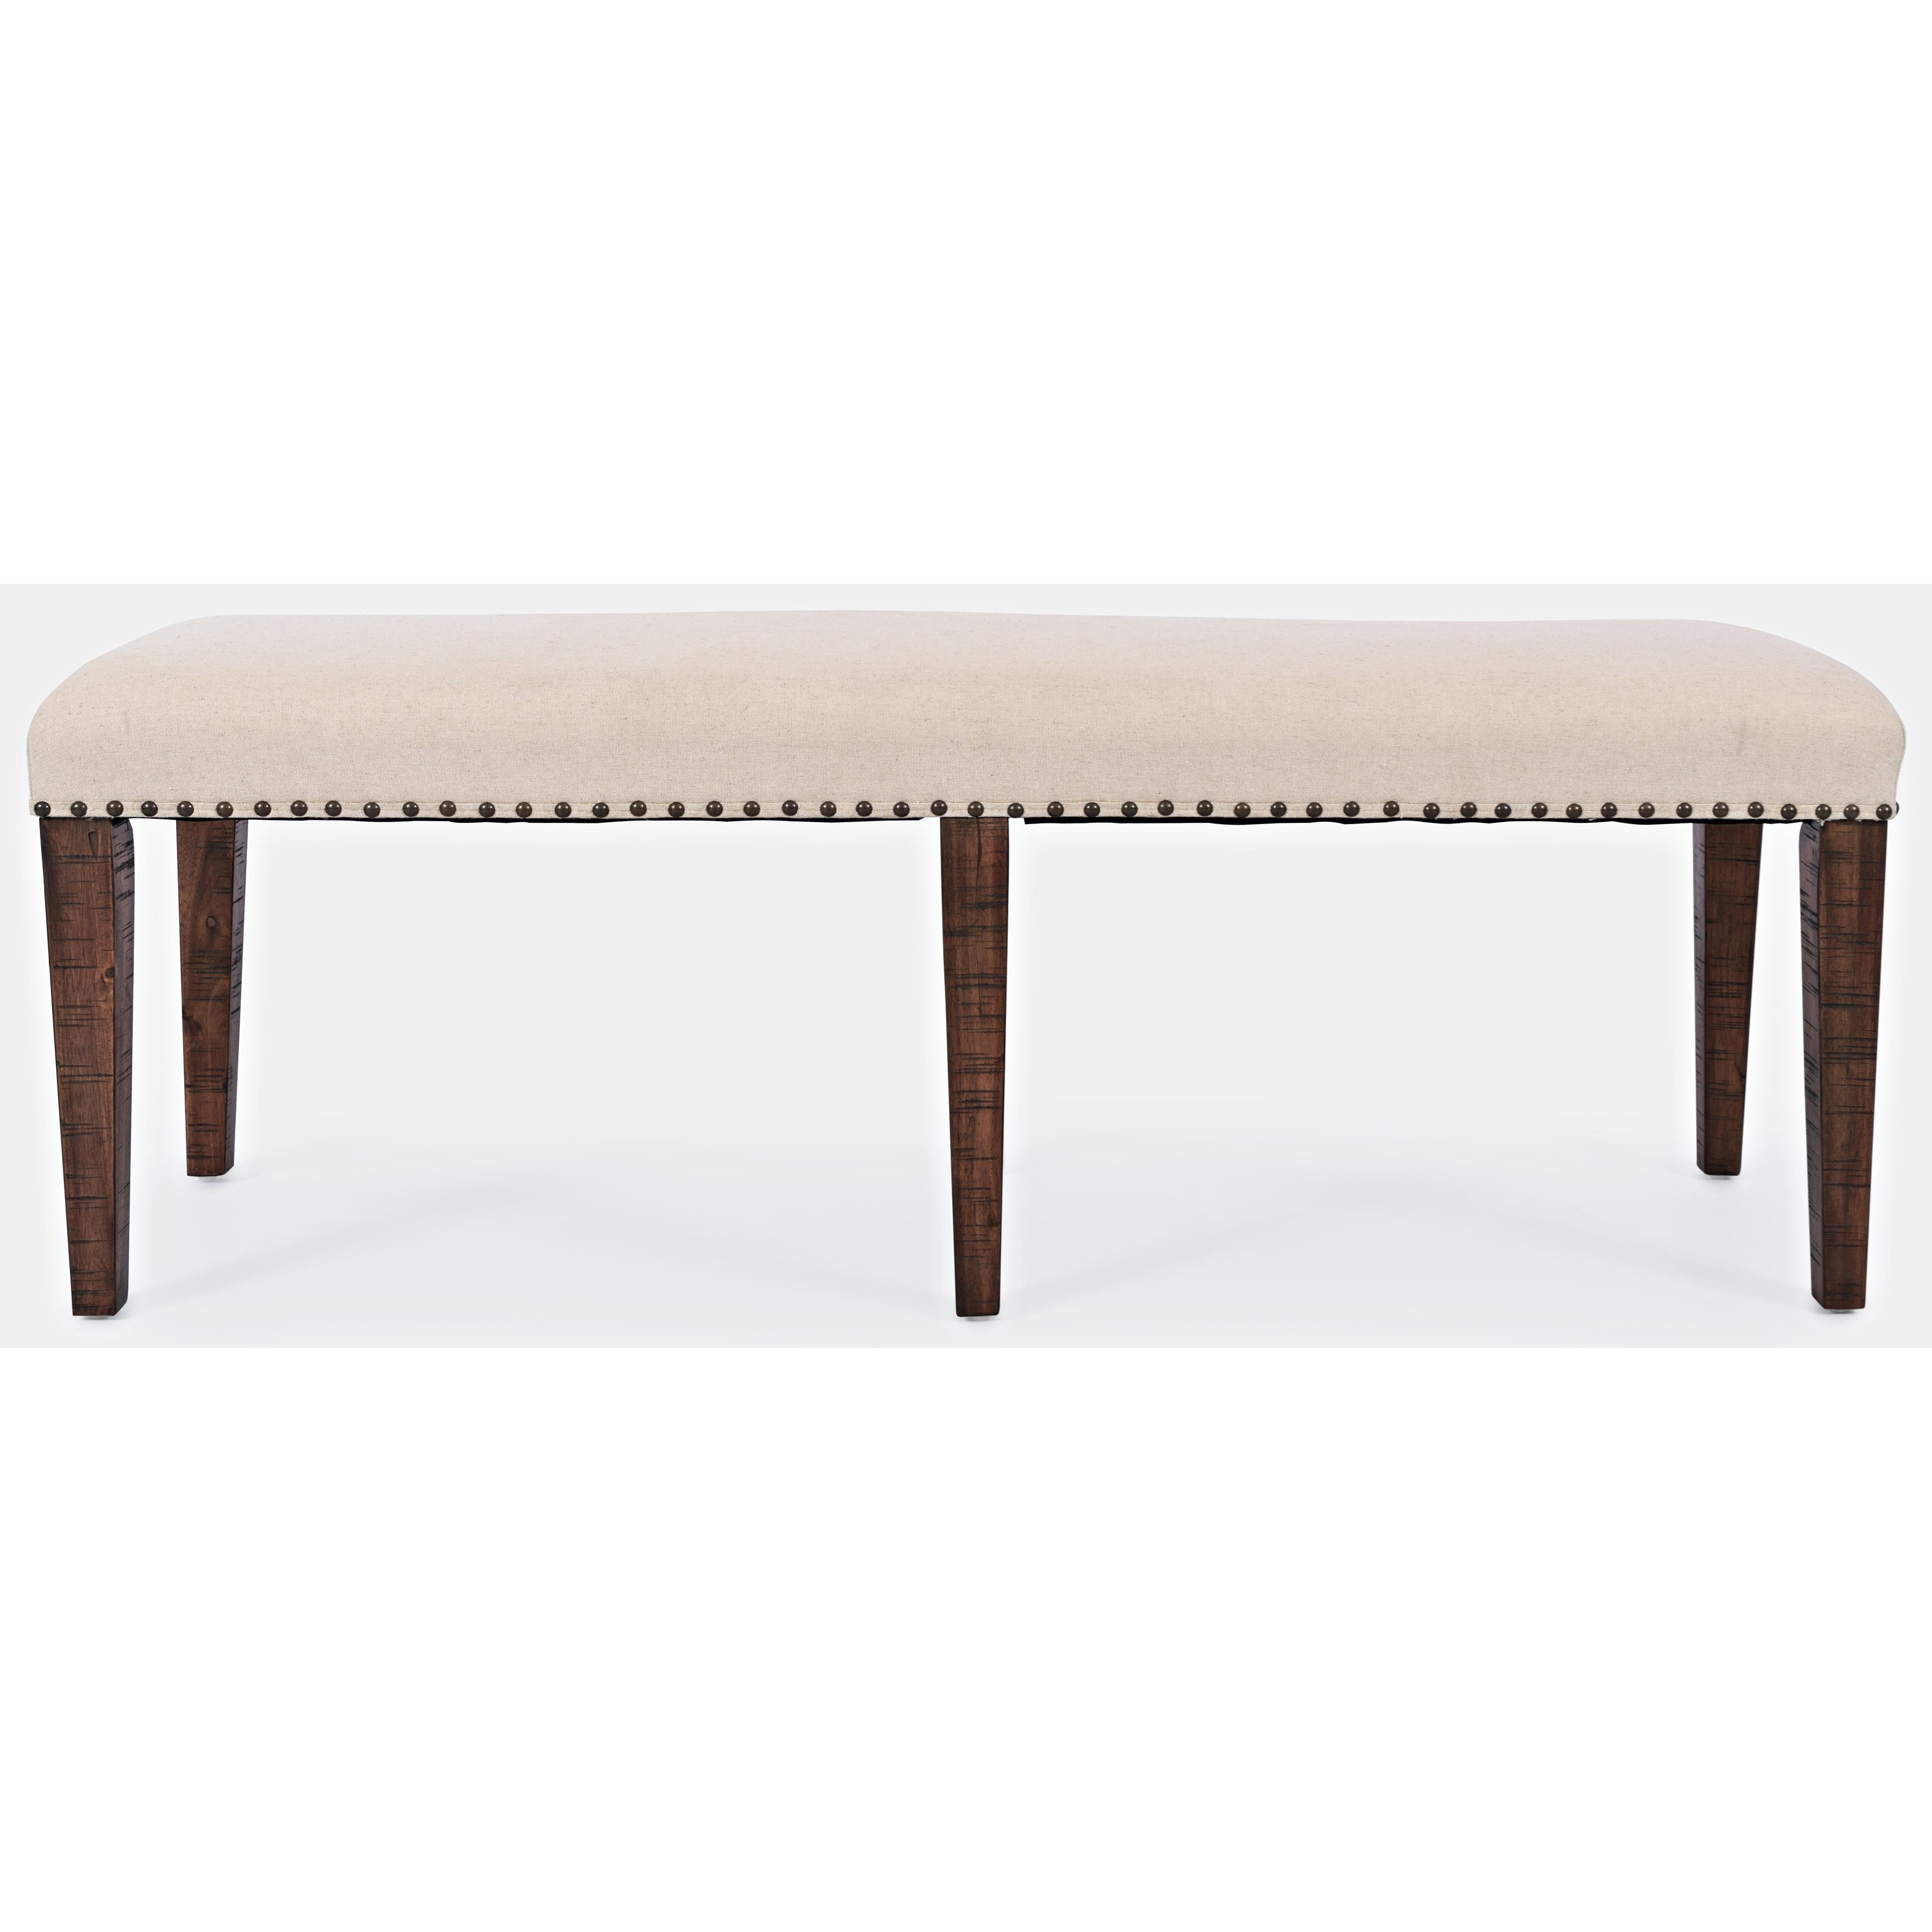 Fairview Backless Dining Bench by Jofran at Crowley Furniture & Mattress